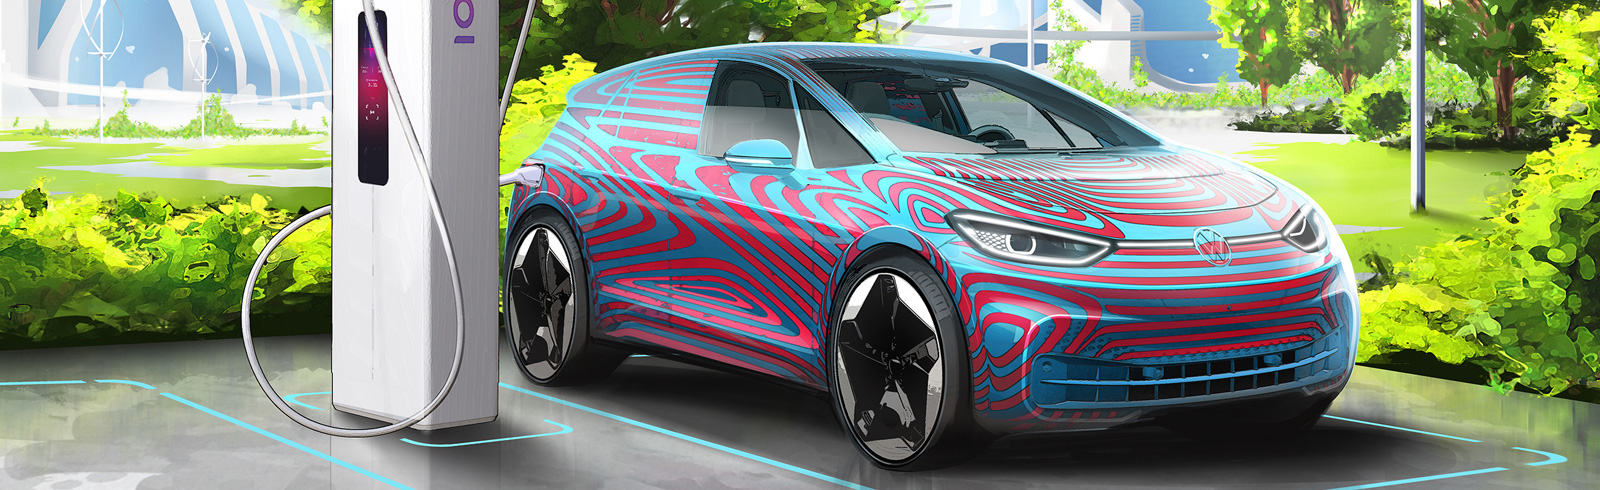 Volkswagen plans on installing 36,000 charging points in Europe by 2025